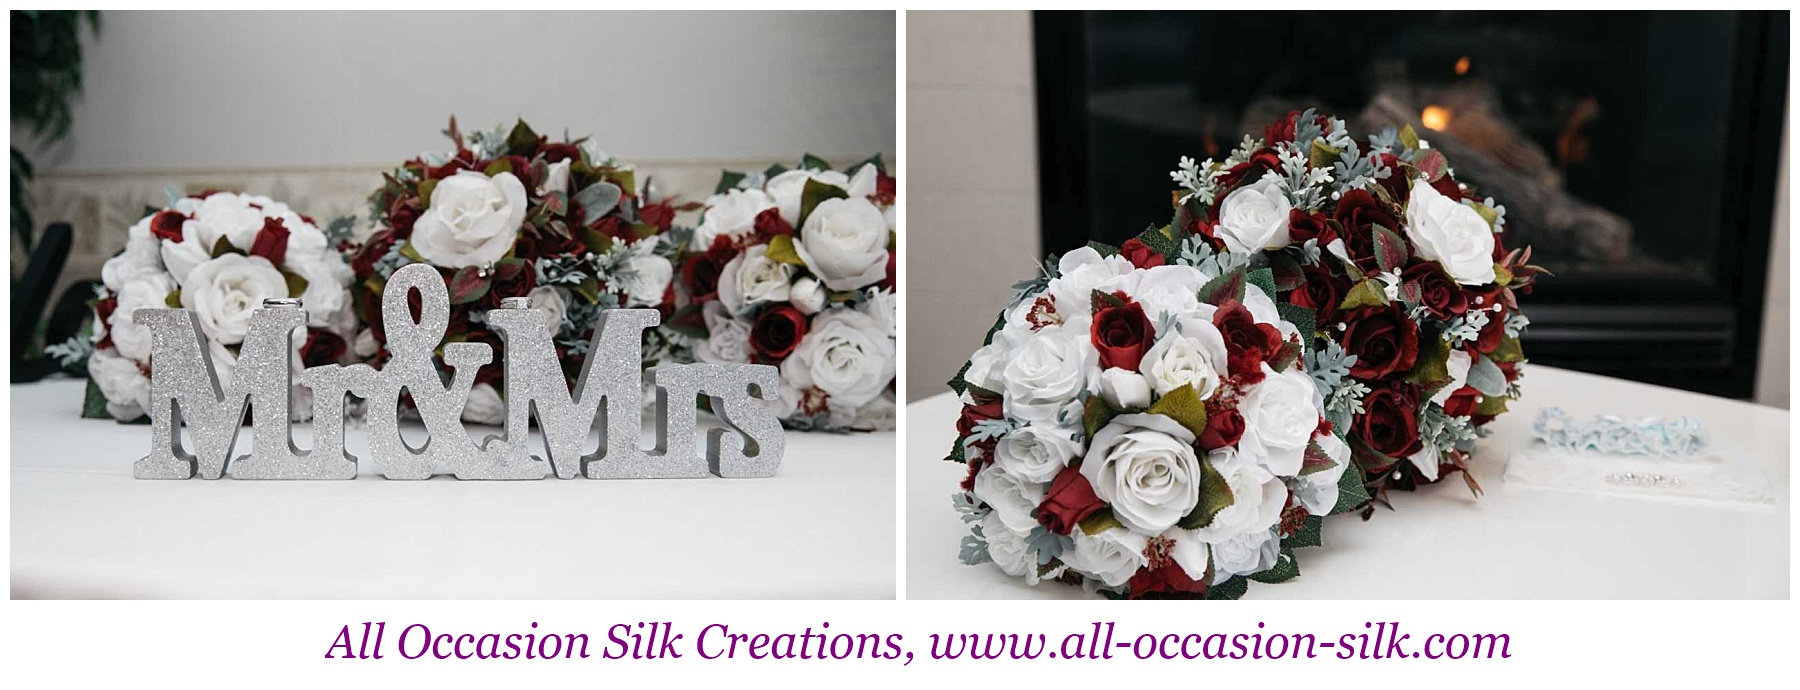 white and red silk rose bouquets on a reception table